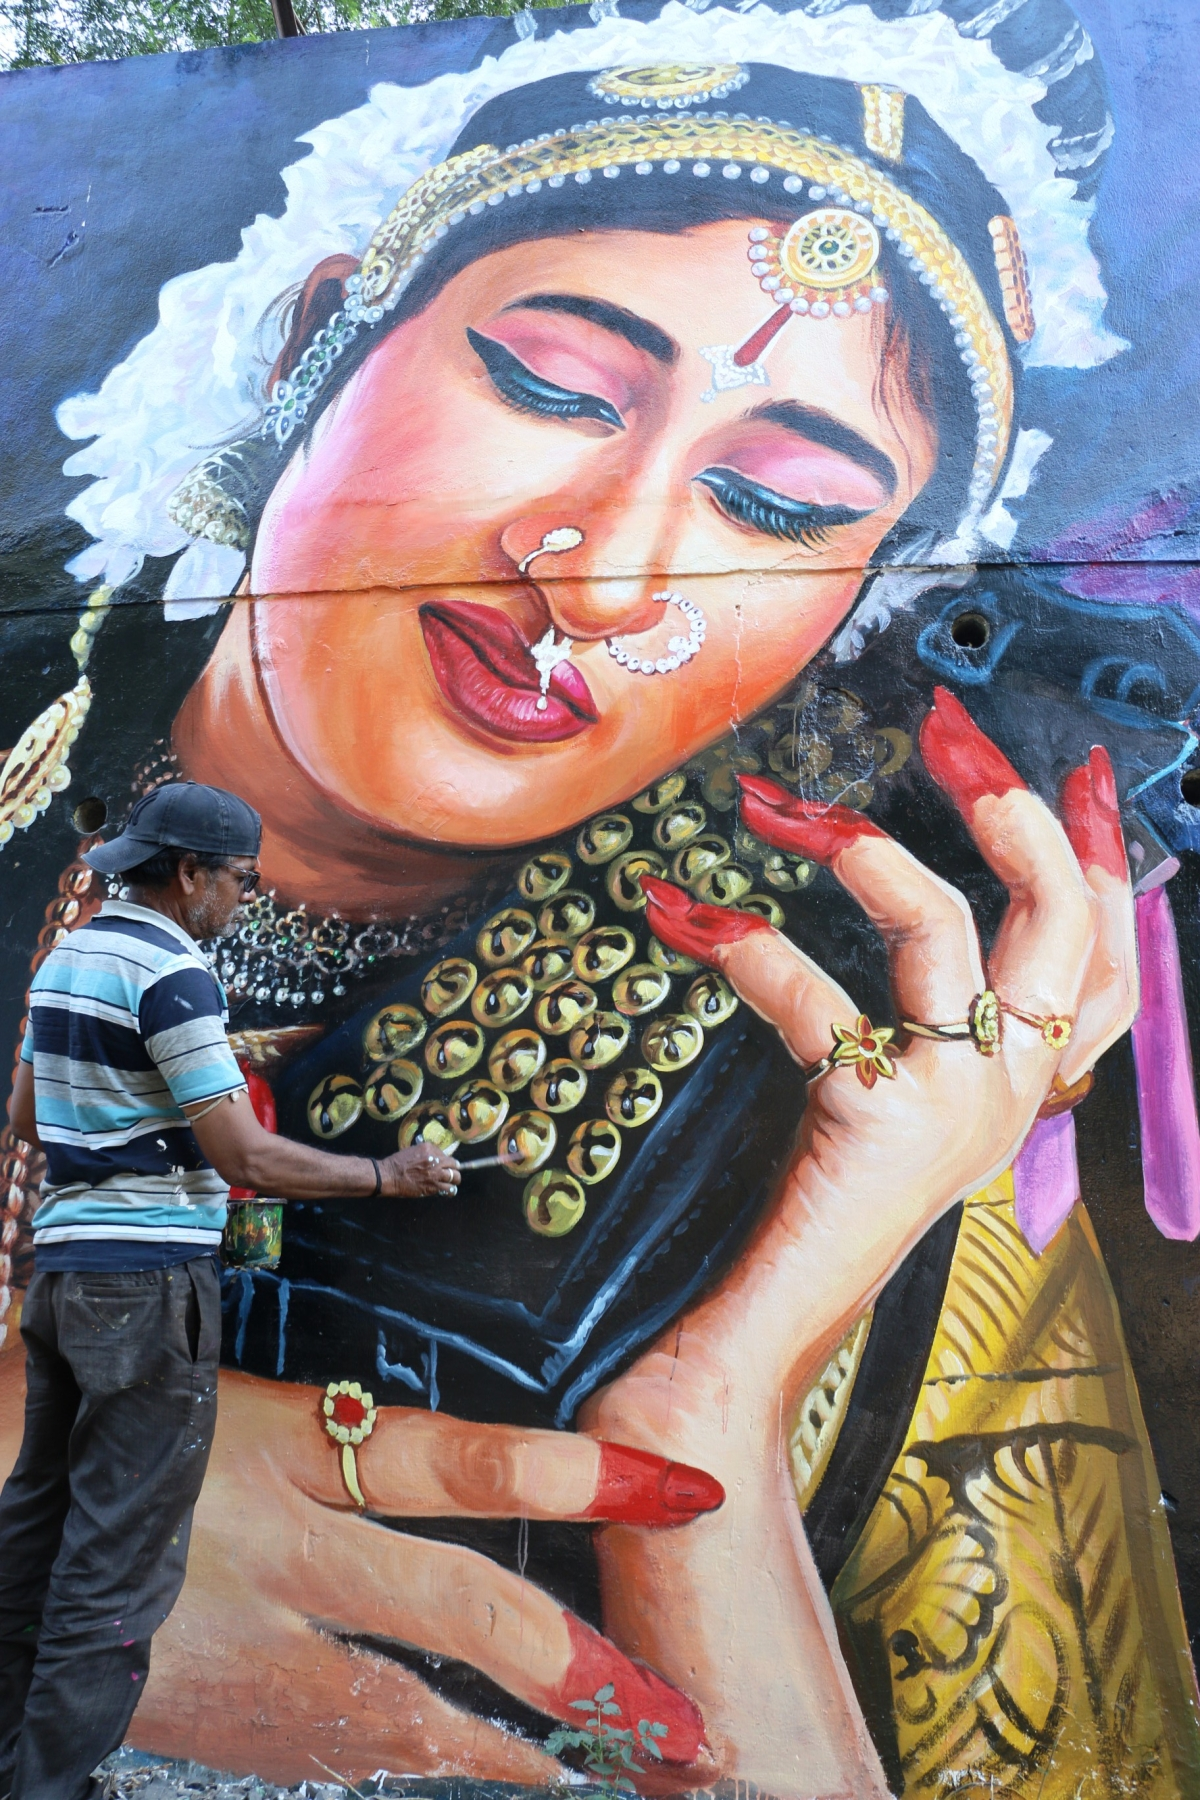 Indore: Walls in city come alive with colourful paintings, saving a dying art form in the process